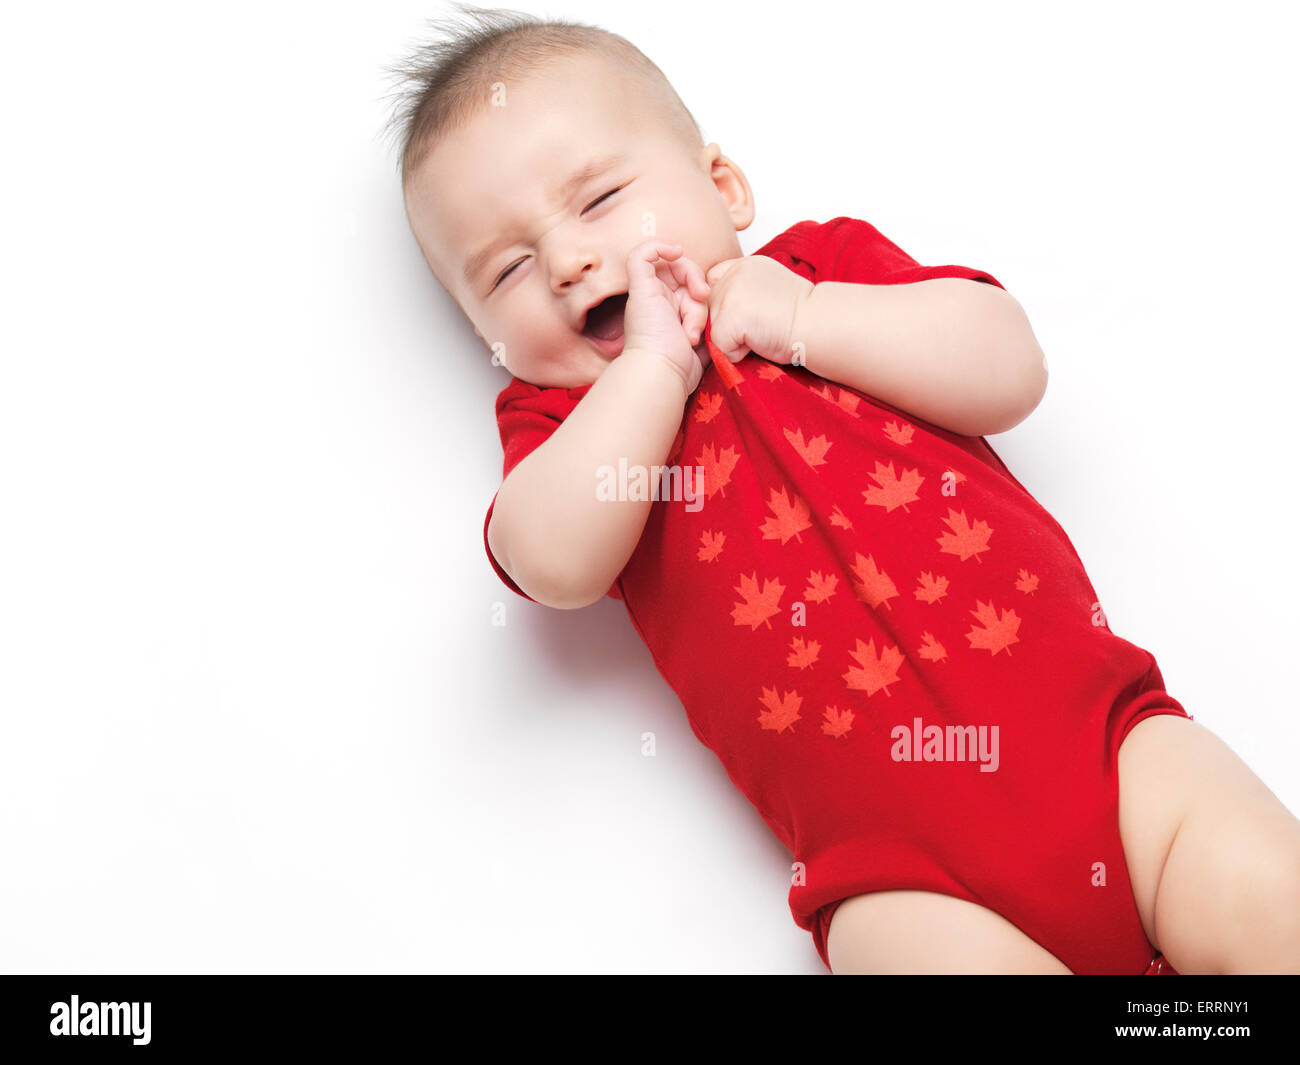 Happy cute yawning four month old baby boy wearing red body suit. Isolated on white background. - Stock Image